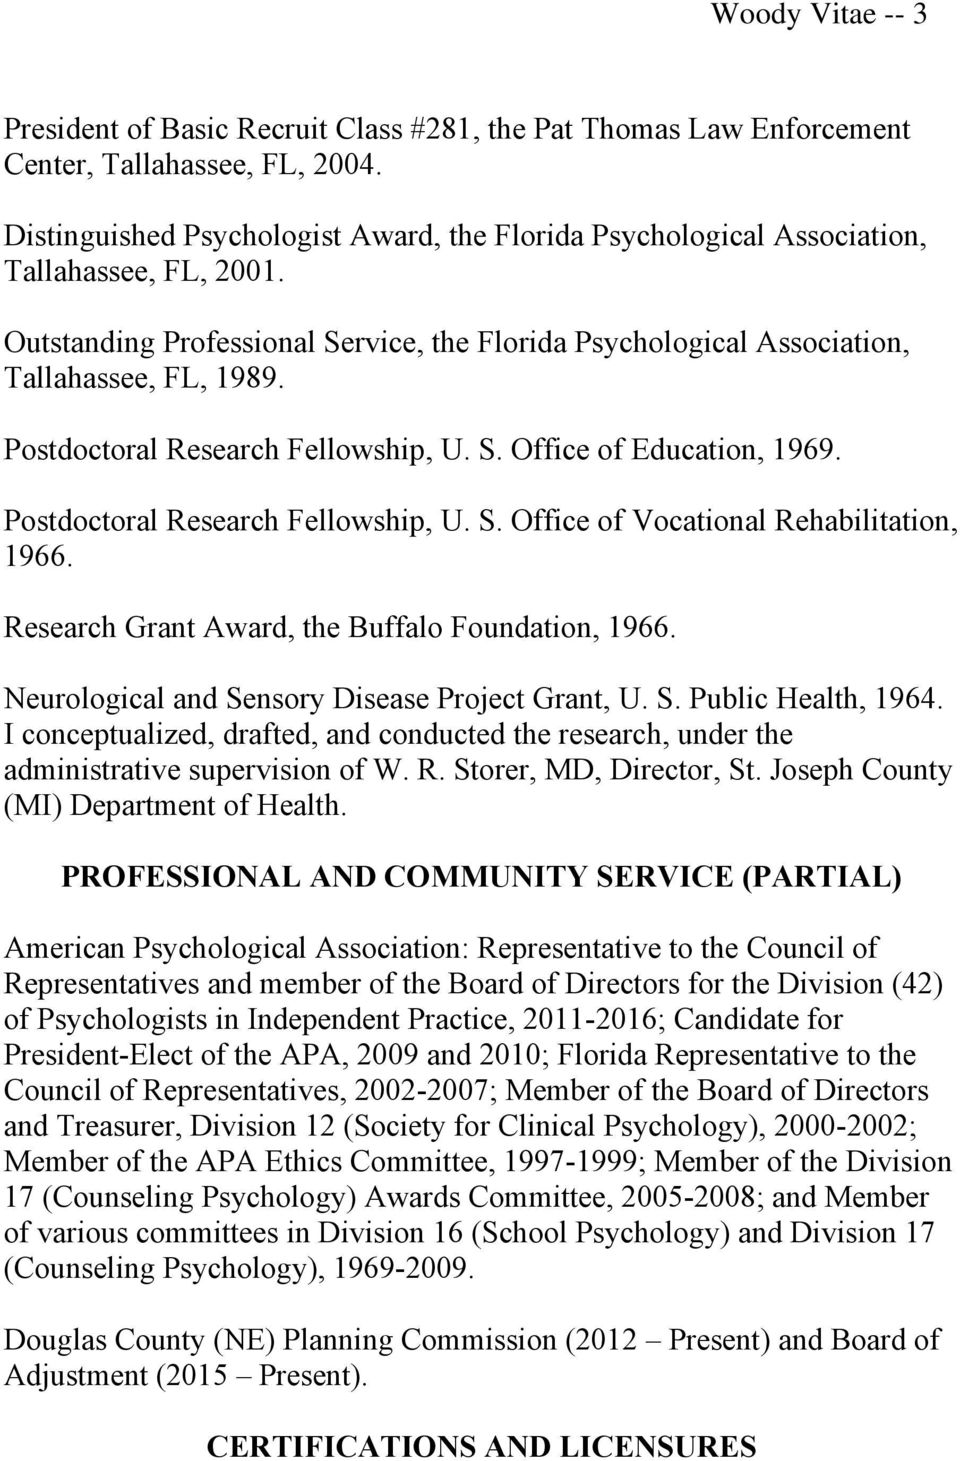 Postdoctoral Research Fellowship, U. S. Office of Education, 1969. Postdoctoral Research Fellowship, U. S. Office of Vocational Rehabilitation, 1966.